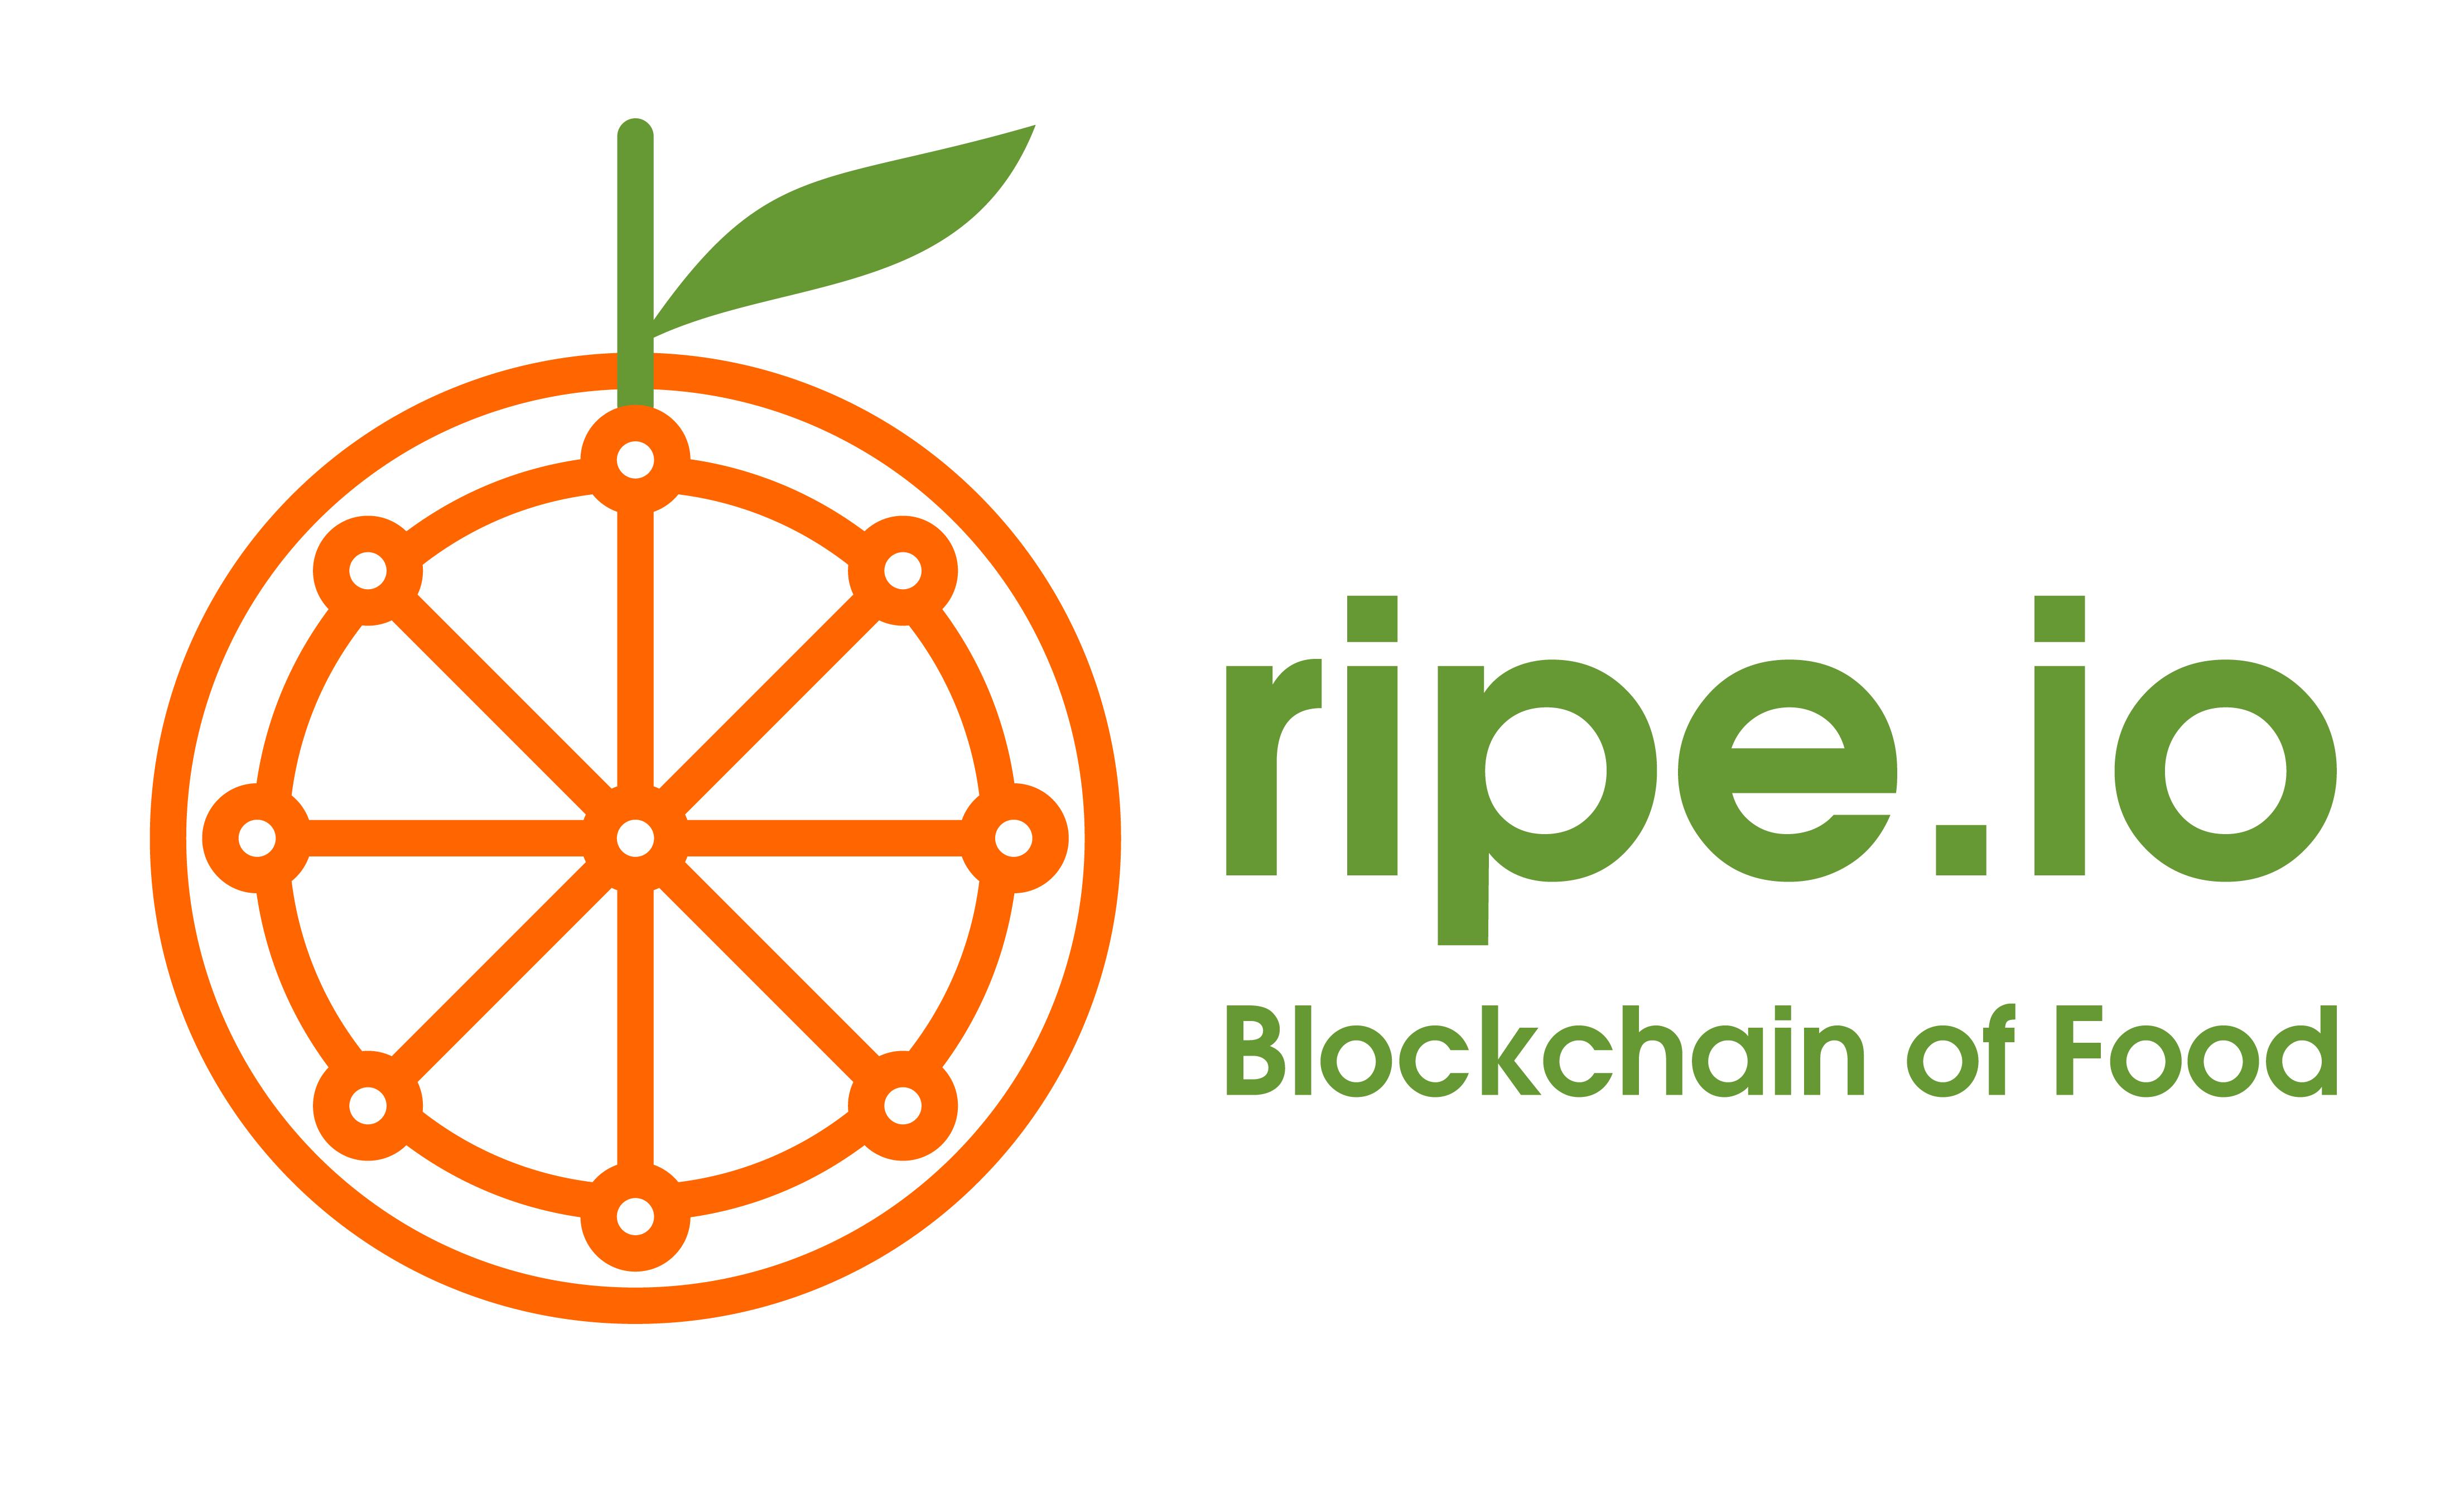 Blockchain Technology and Food Supply Chain